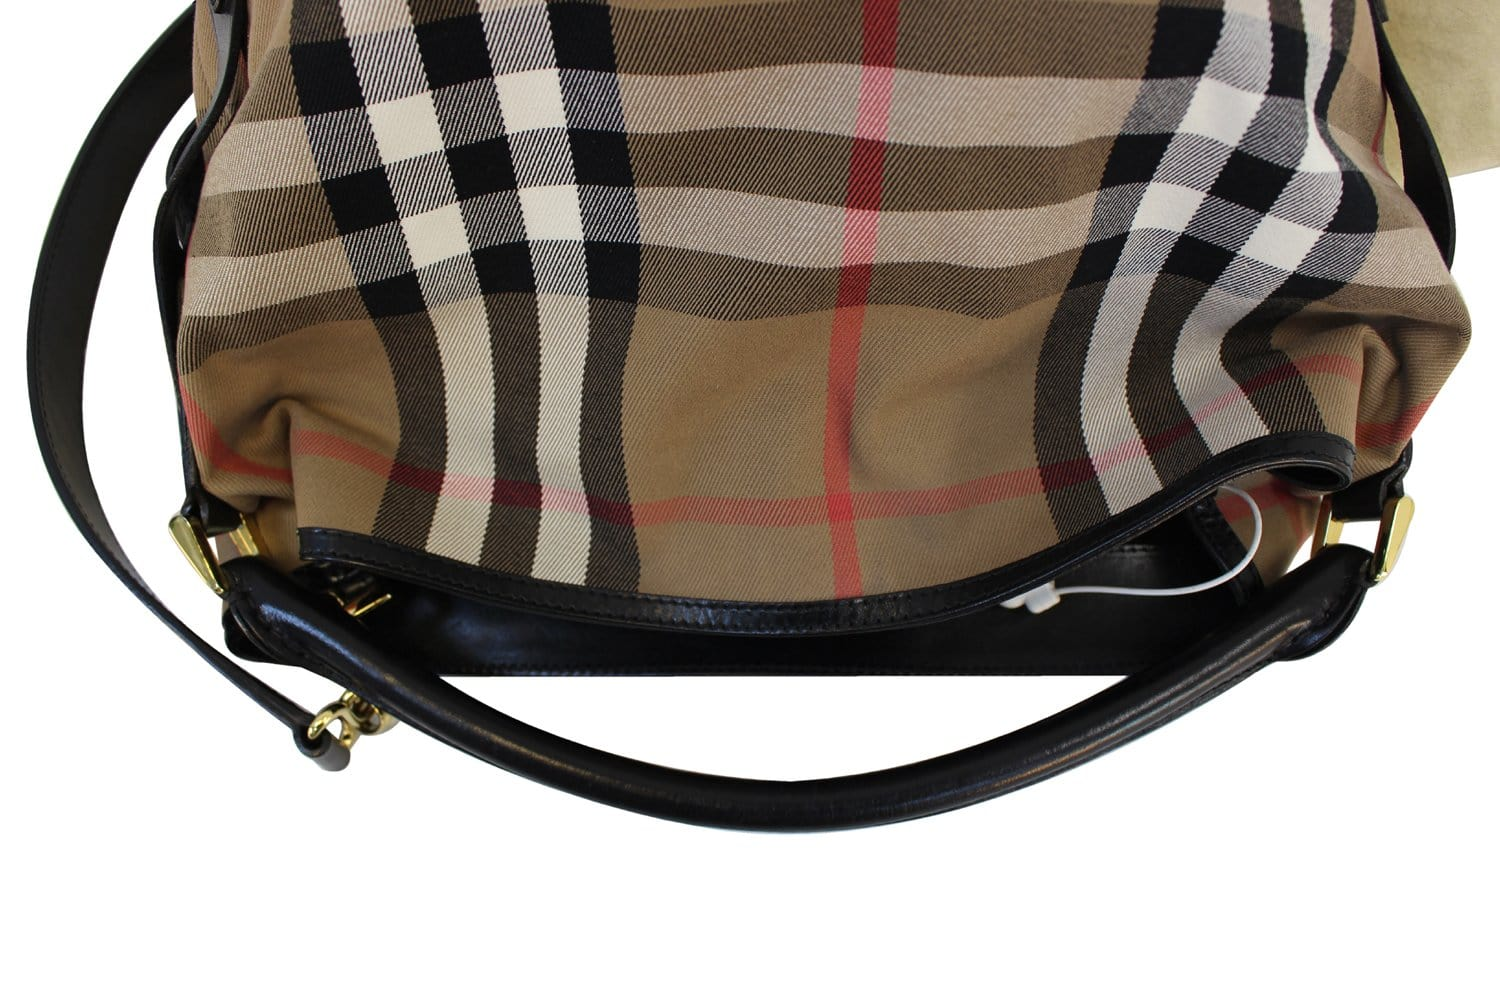 145213233cb2 Authentic BURBERRY Black Nova Check Canvas Medium Bridle Hobo Bag TT1635